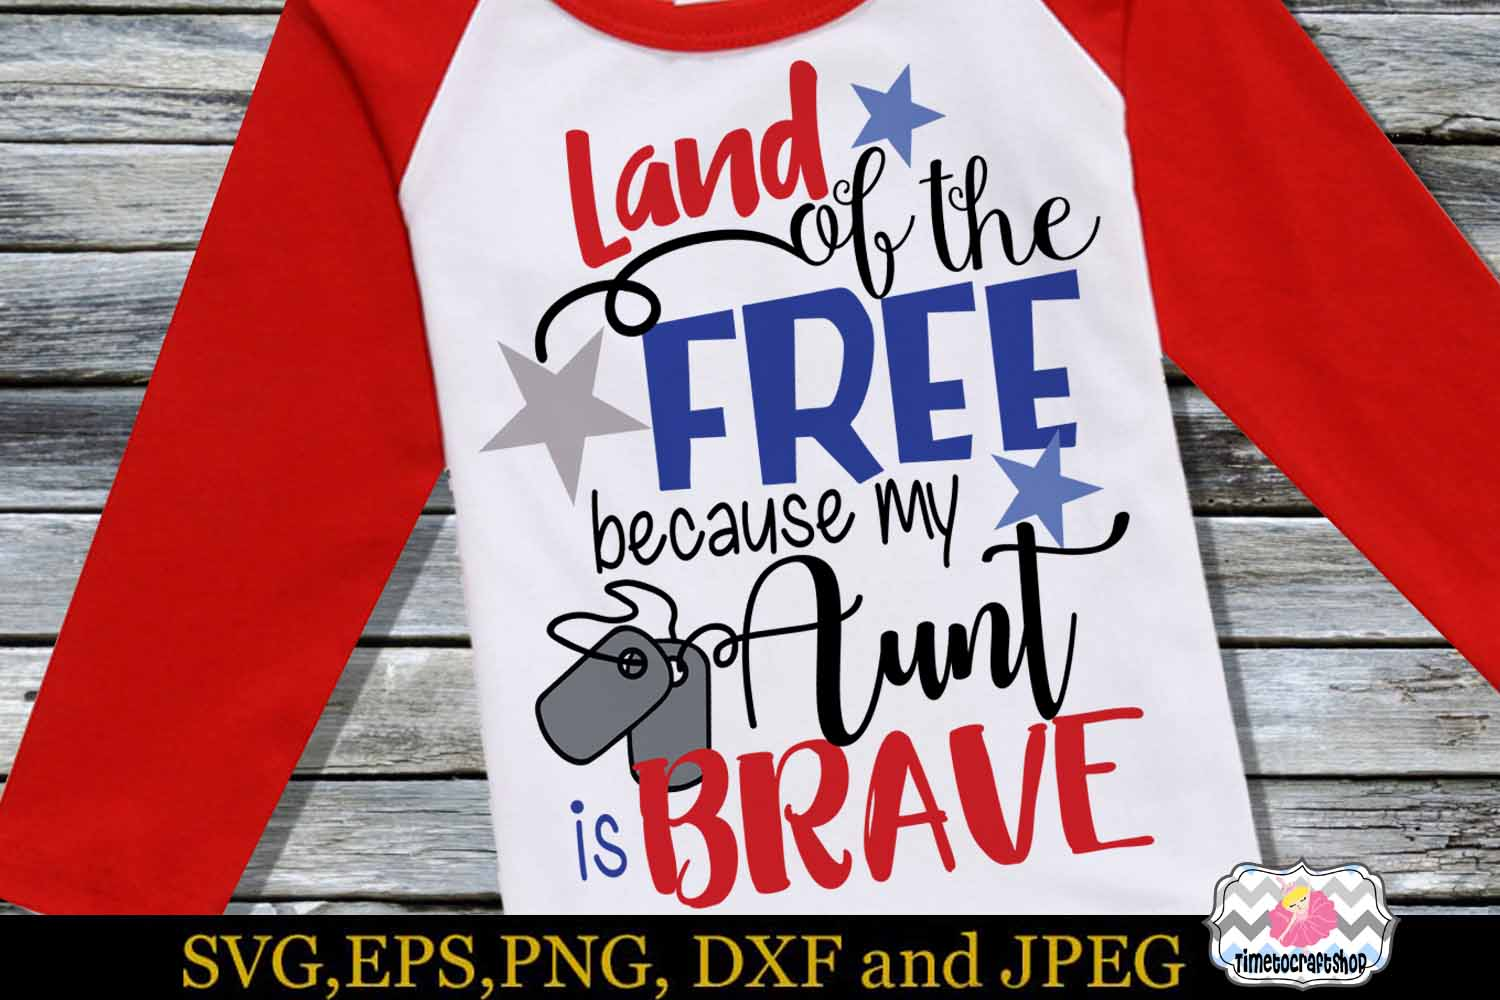 SVG, Dxf, Png Land of the Free Because of the Brave Bundle example image 5